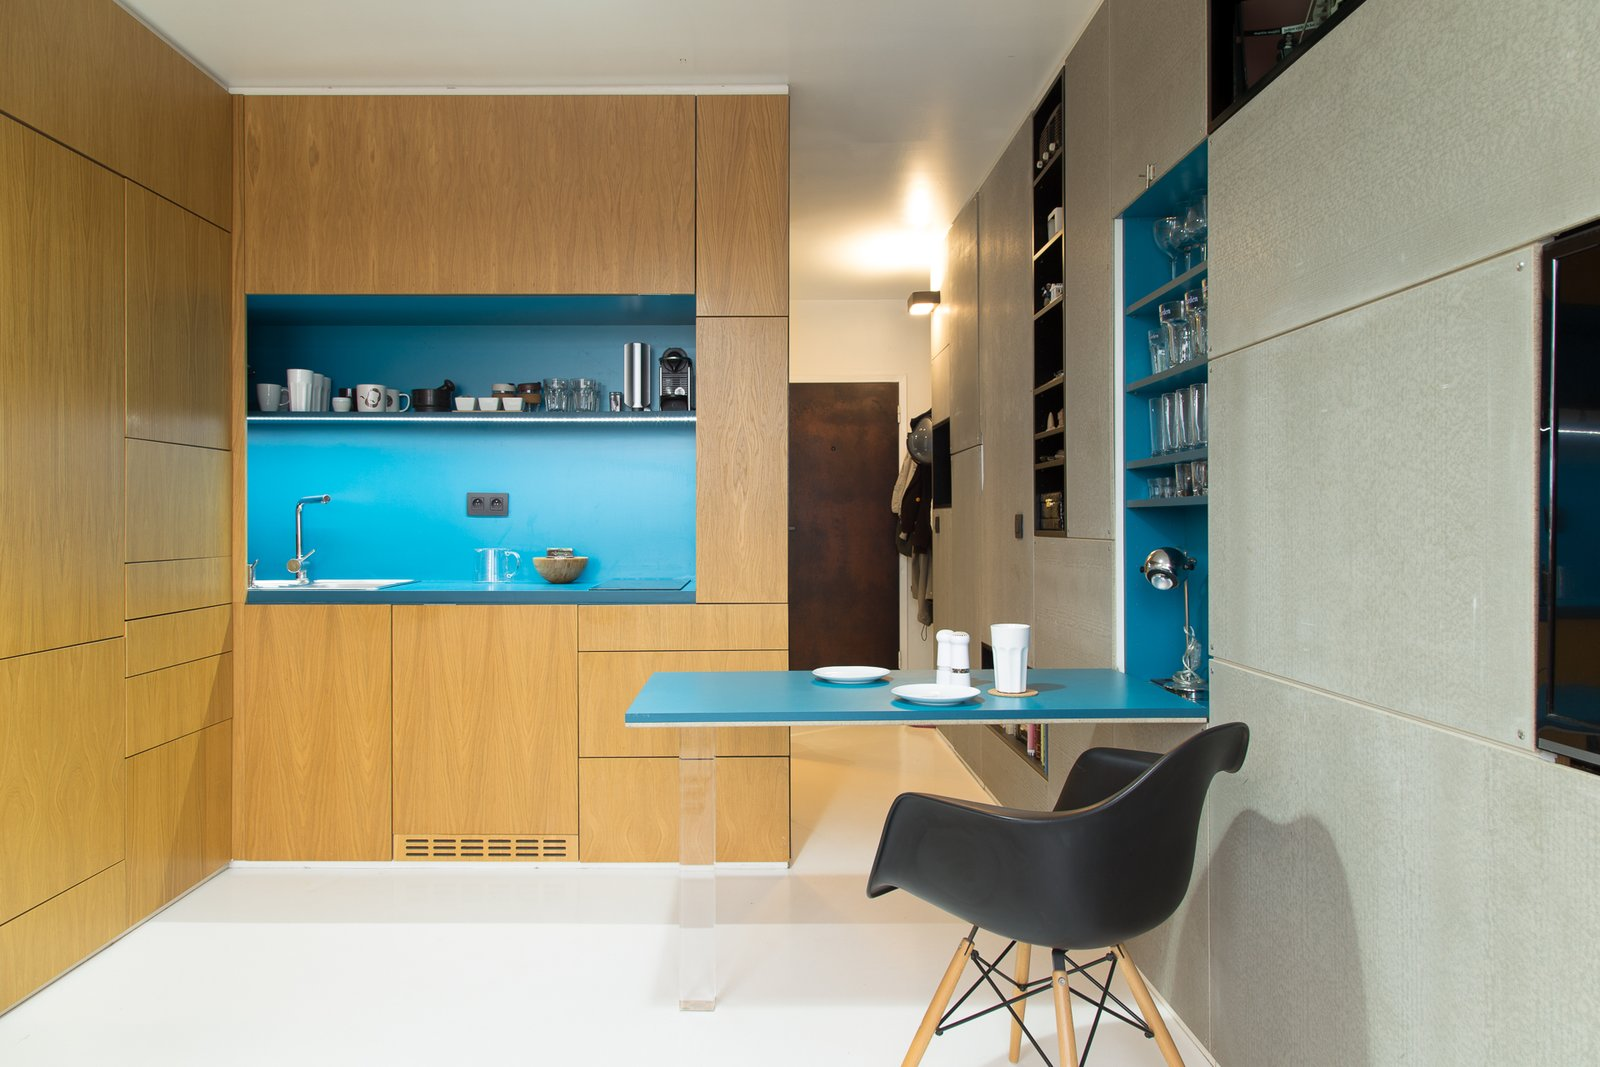 Kitchen, Drop In Sink, Open Cabinet, Colorful Cabinet, and Wood Cabinet  Photo 6 of 8 in A Tiny Apartment in Slovakia Makes Clever Use of Space